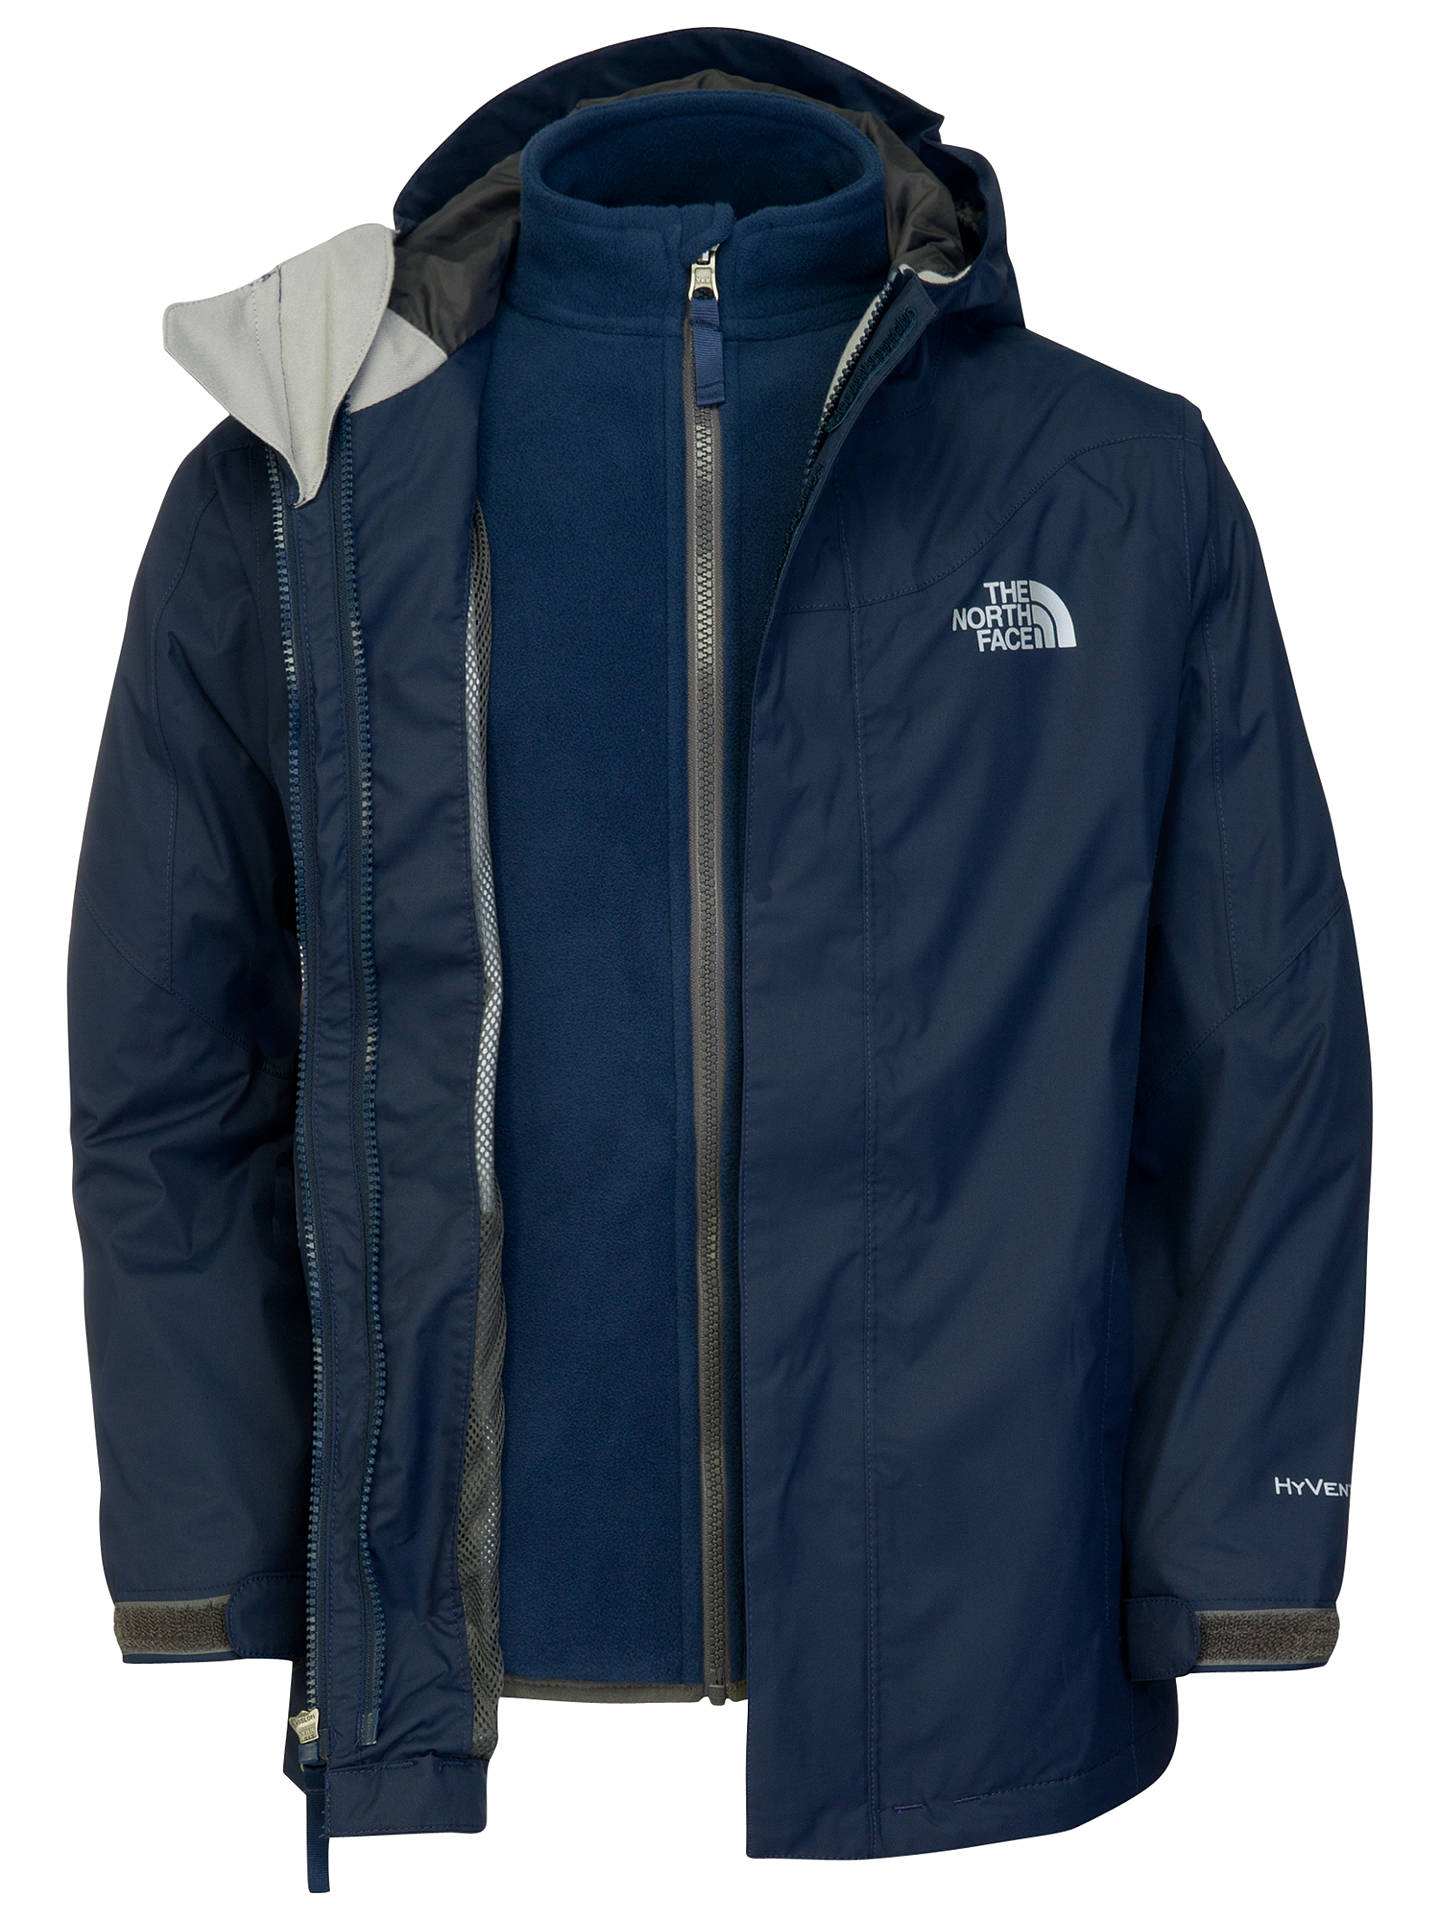 9fdd1f85a The North Face Evolution Triclimate Jacket, Blue at John Lewis ...